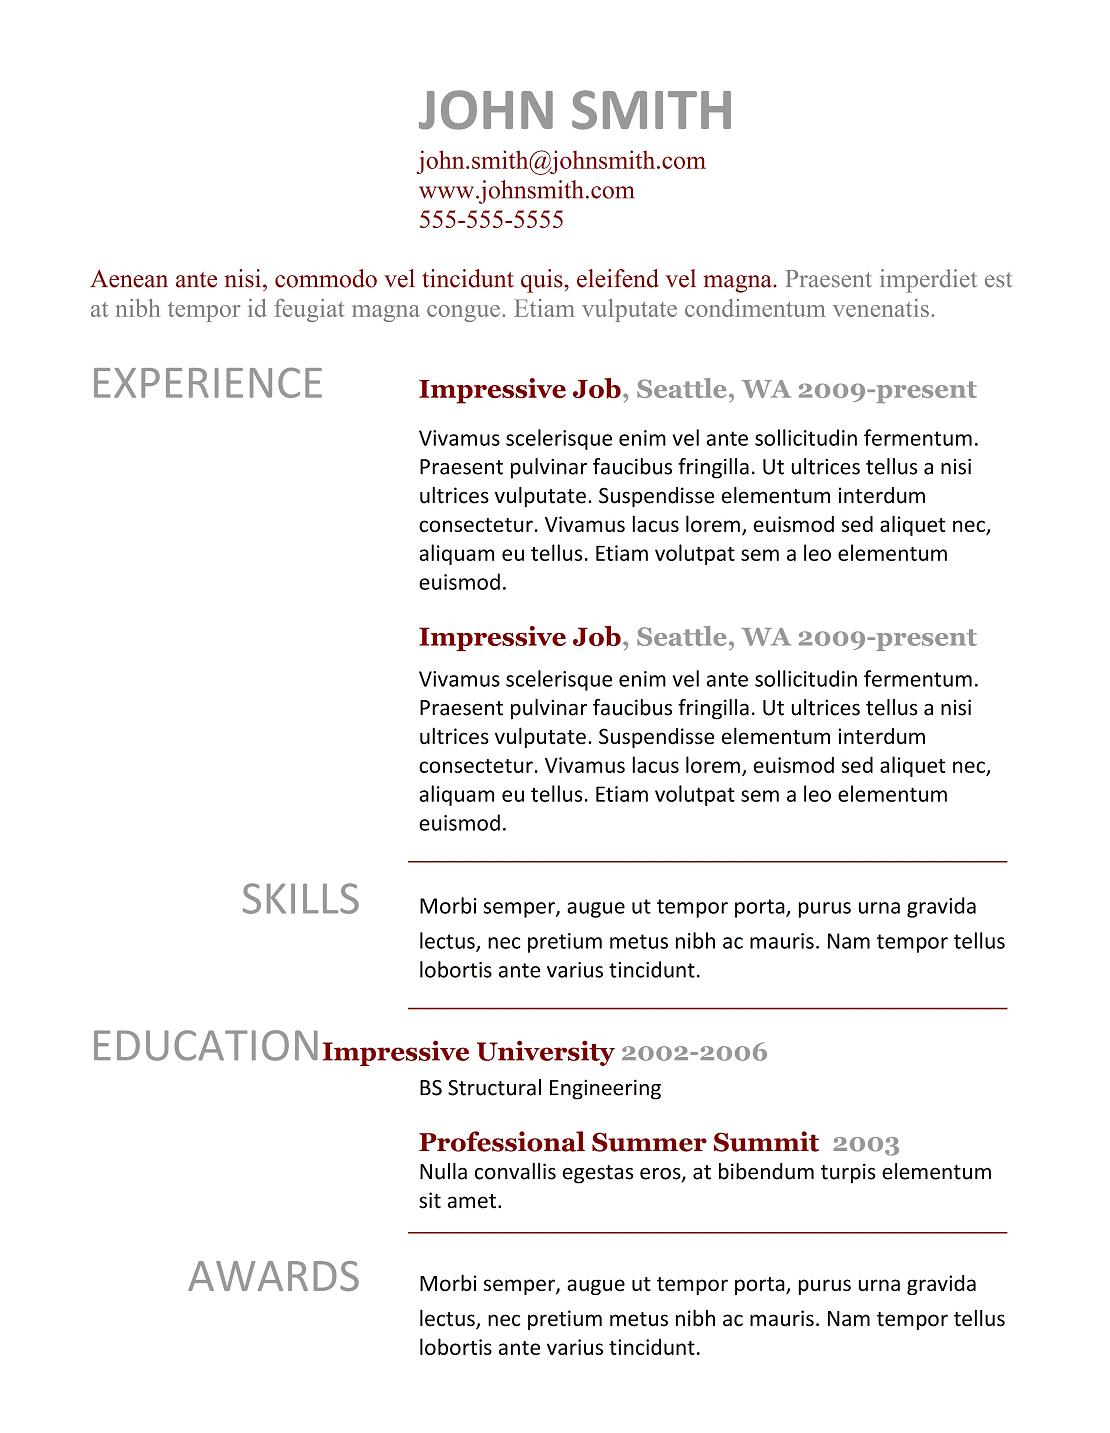 simple curriculum vitae format doc resume writing example simple curriculum vitae format doc currculum vitae simple samples of how to make a professional resume